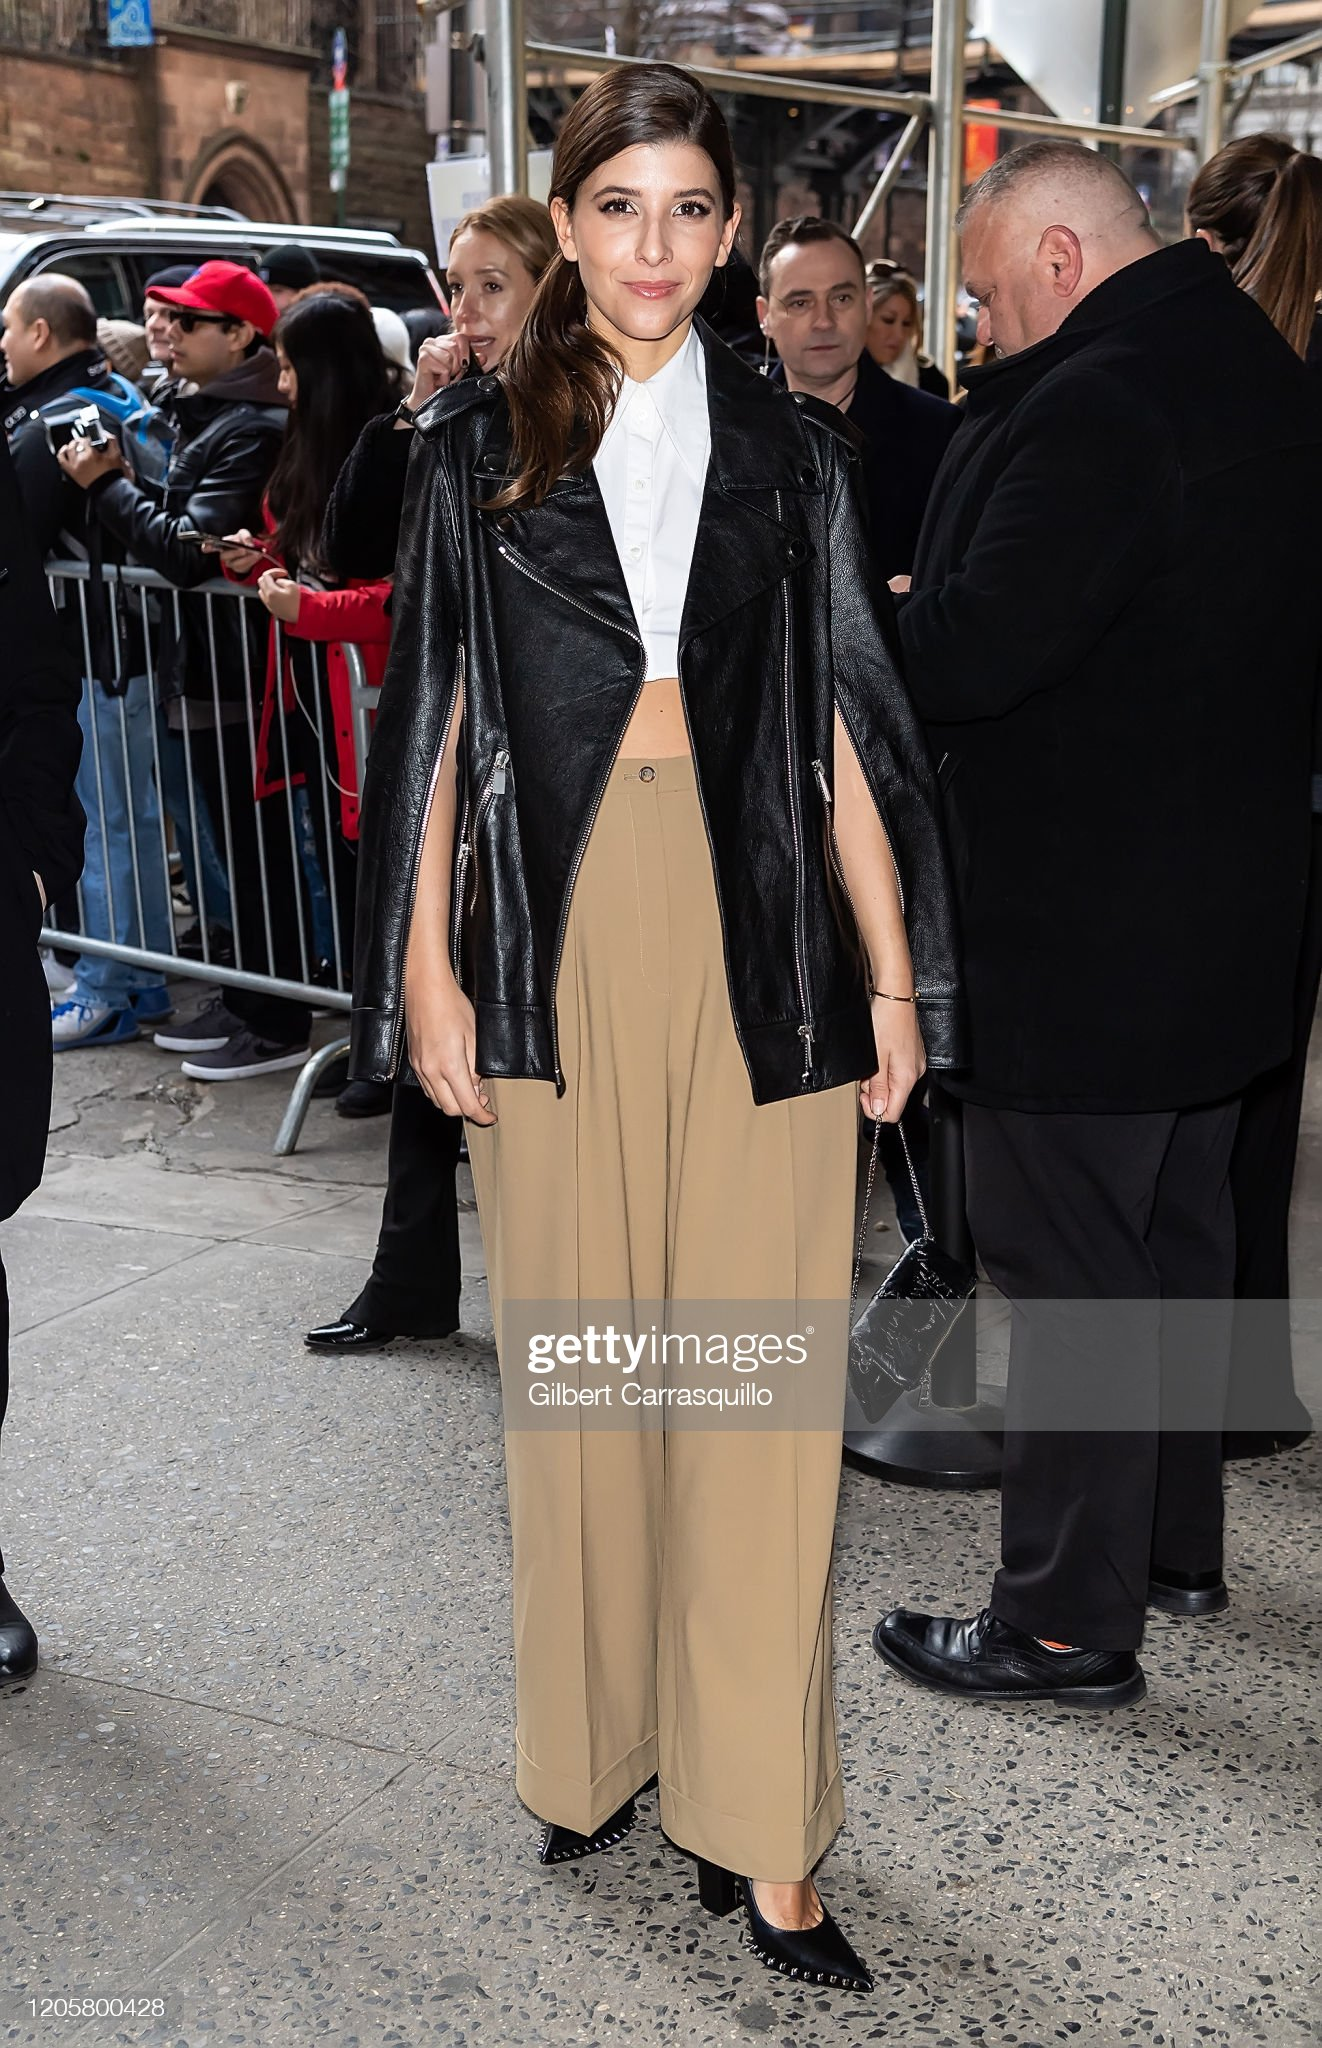 https://media.gettyimages.com/photos/mafalda-is-seen-arriving-to-the-michael-kors-fw20-runway-show-on-12-picture-id1205800428?s=2048x2048